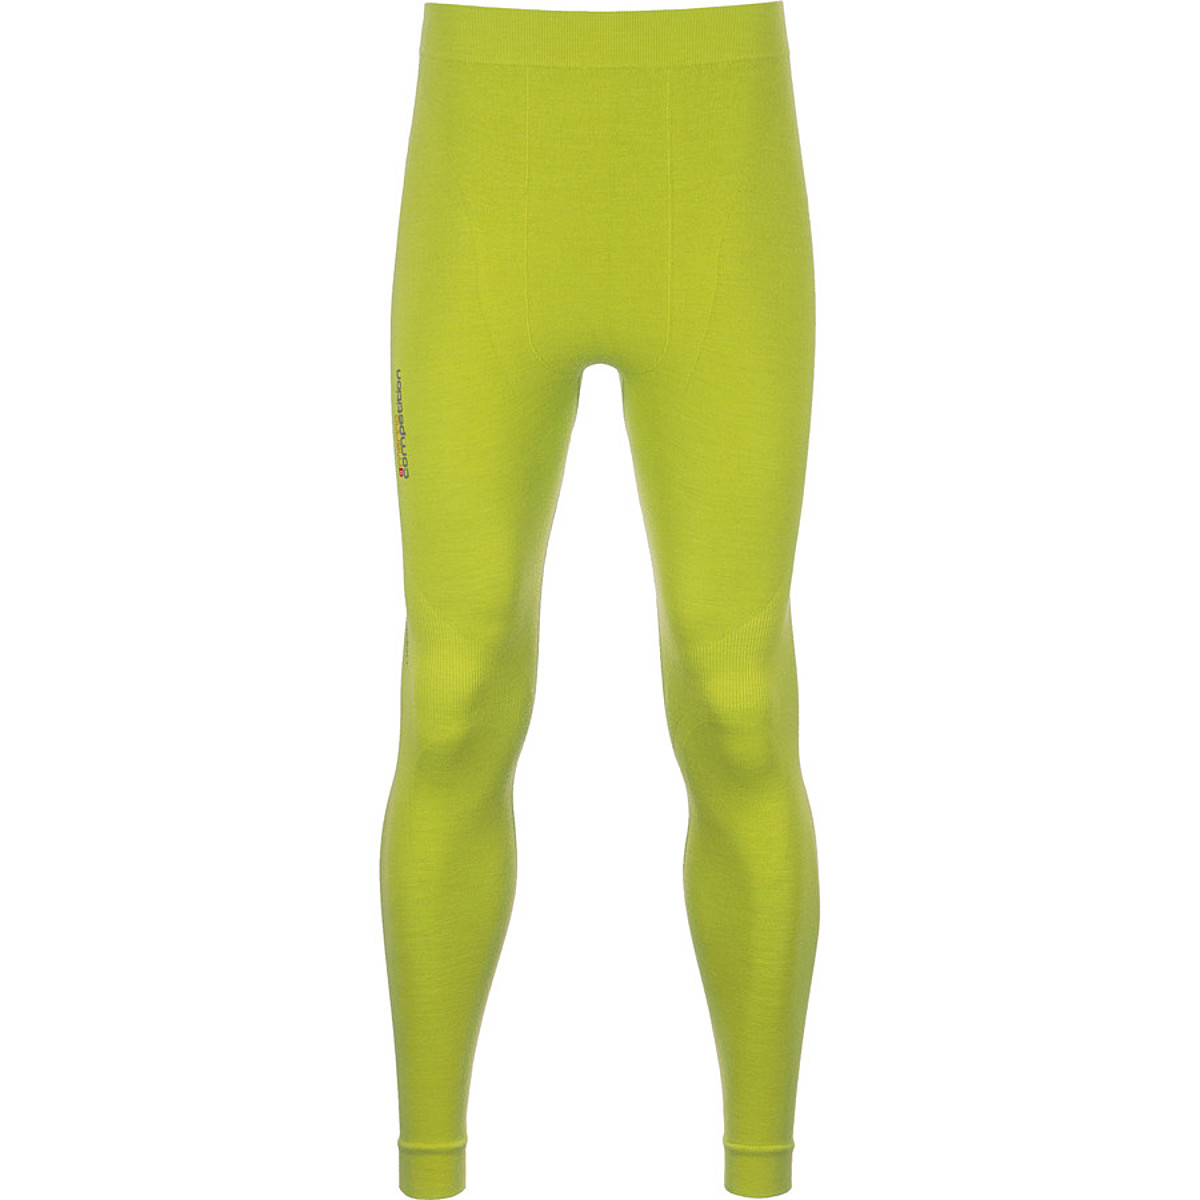 Ortovox Competition Pant